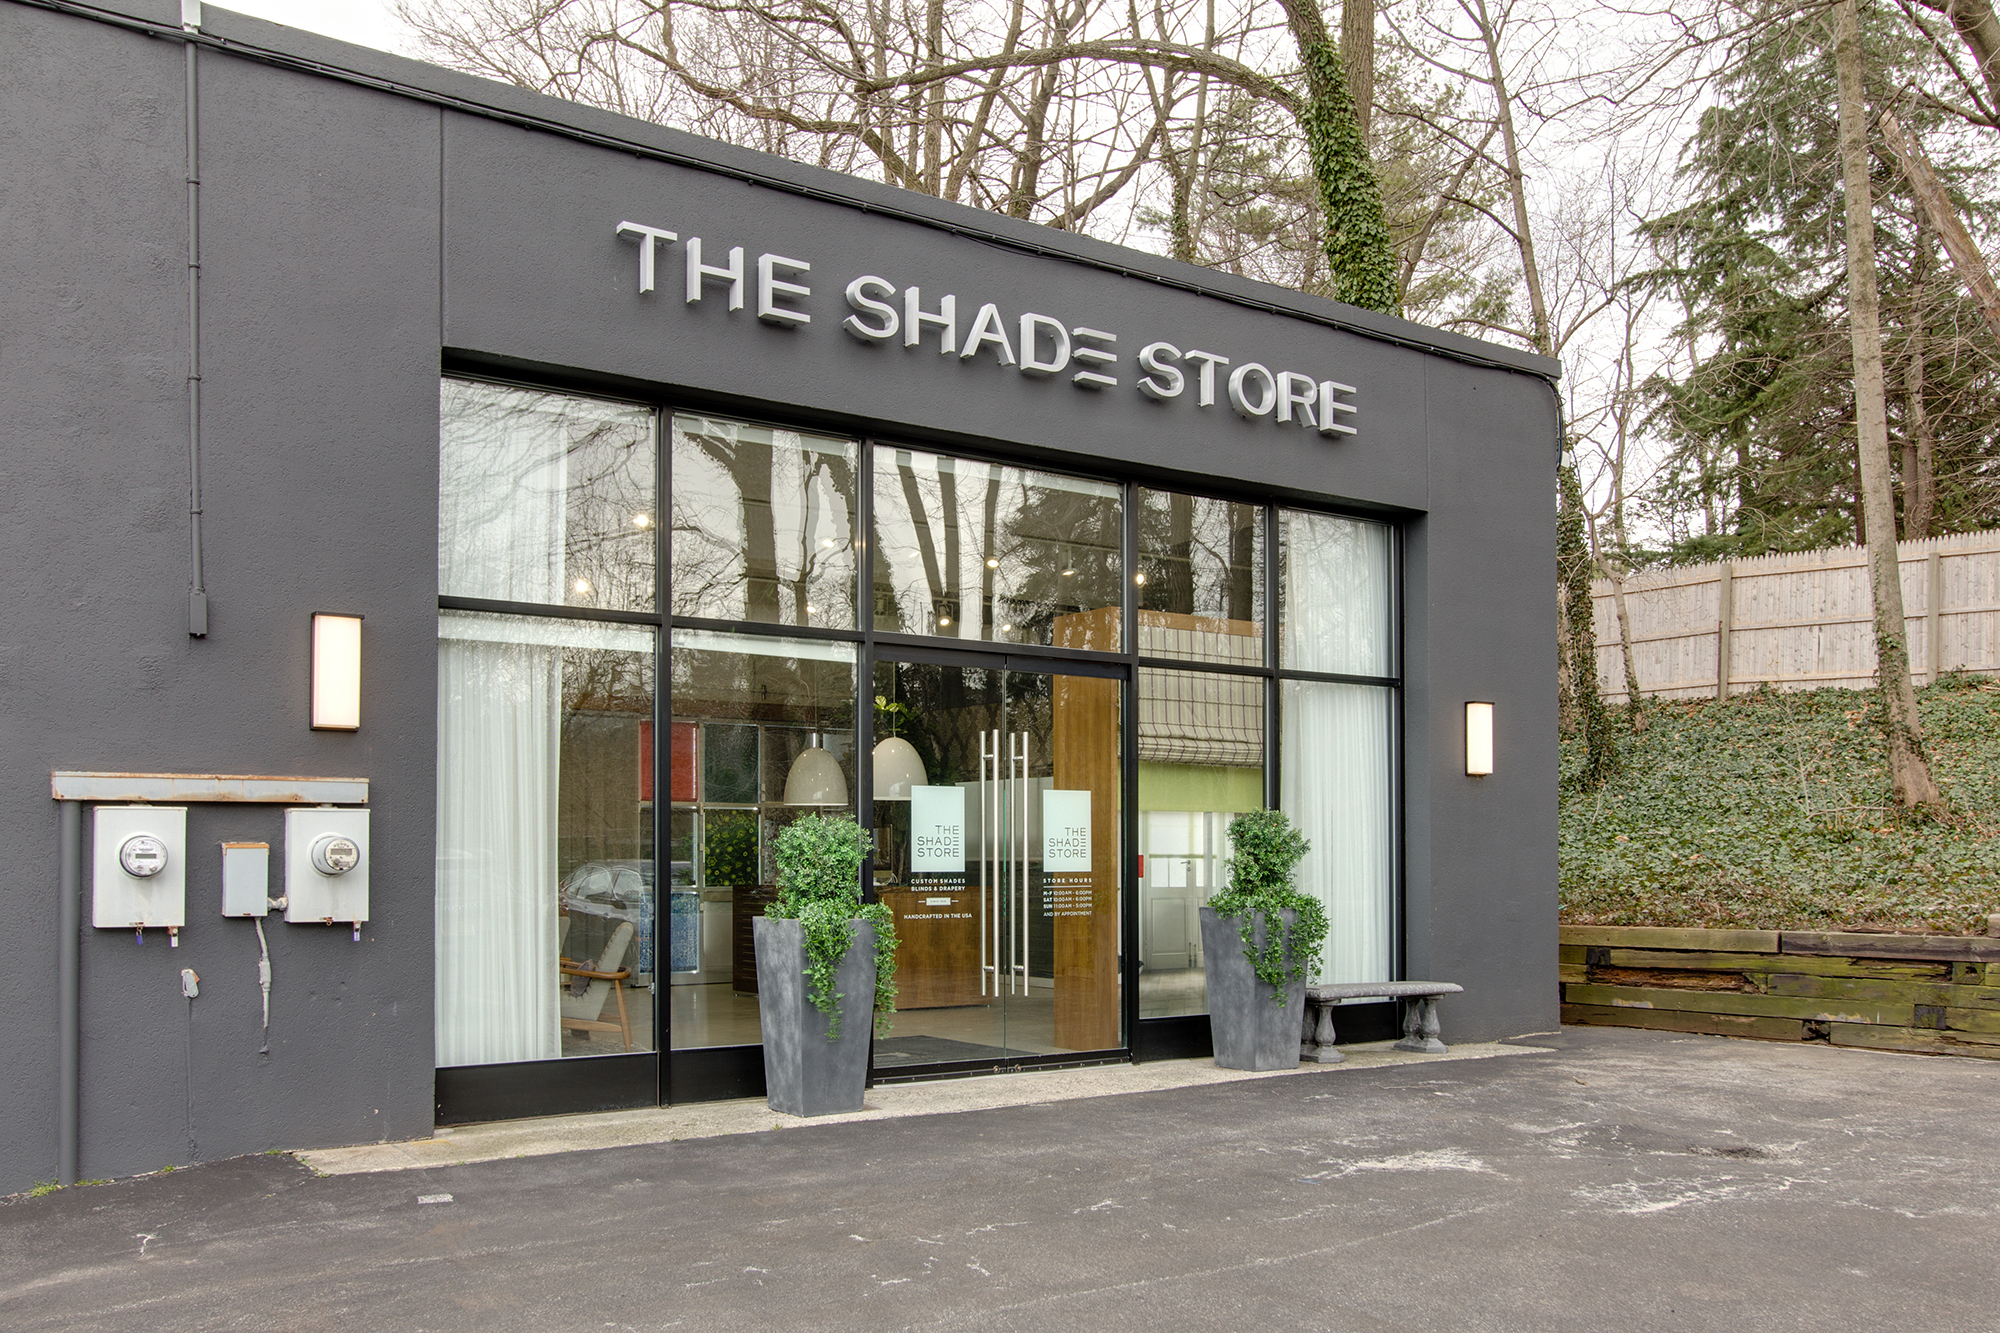 About The Shade Store